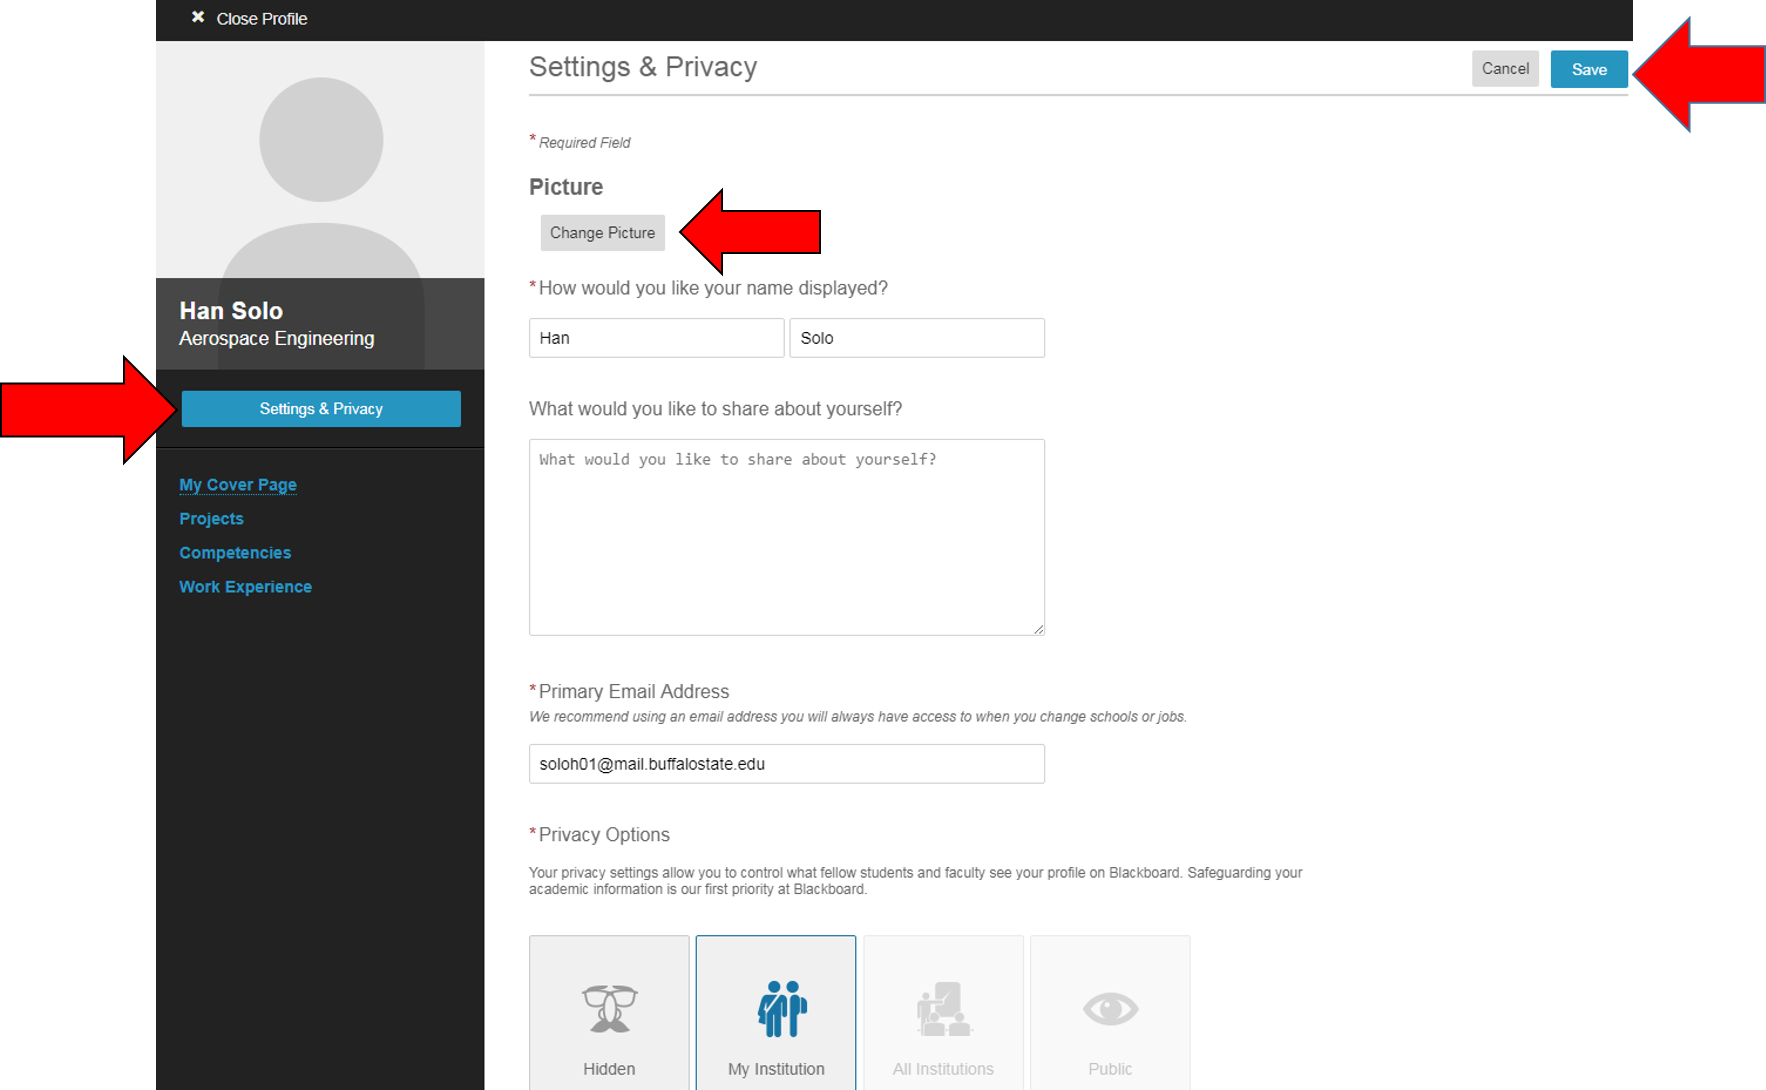 Settings & Privacy. Change Picture.